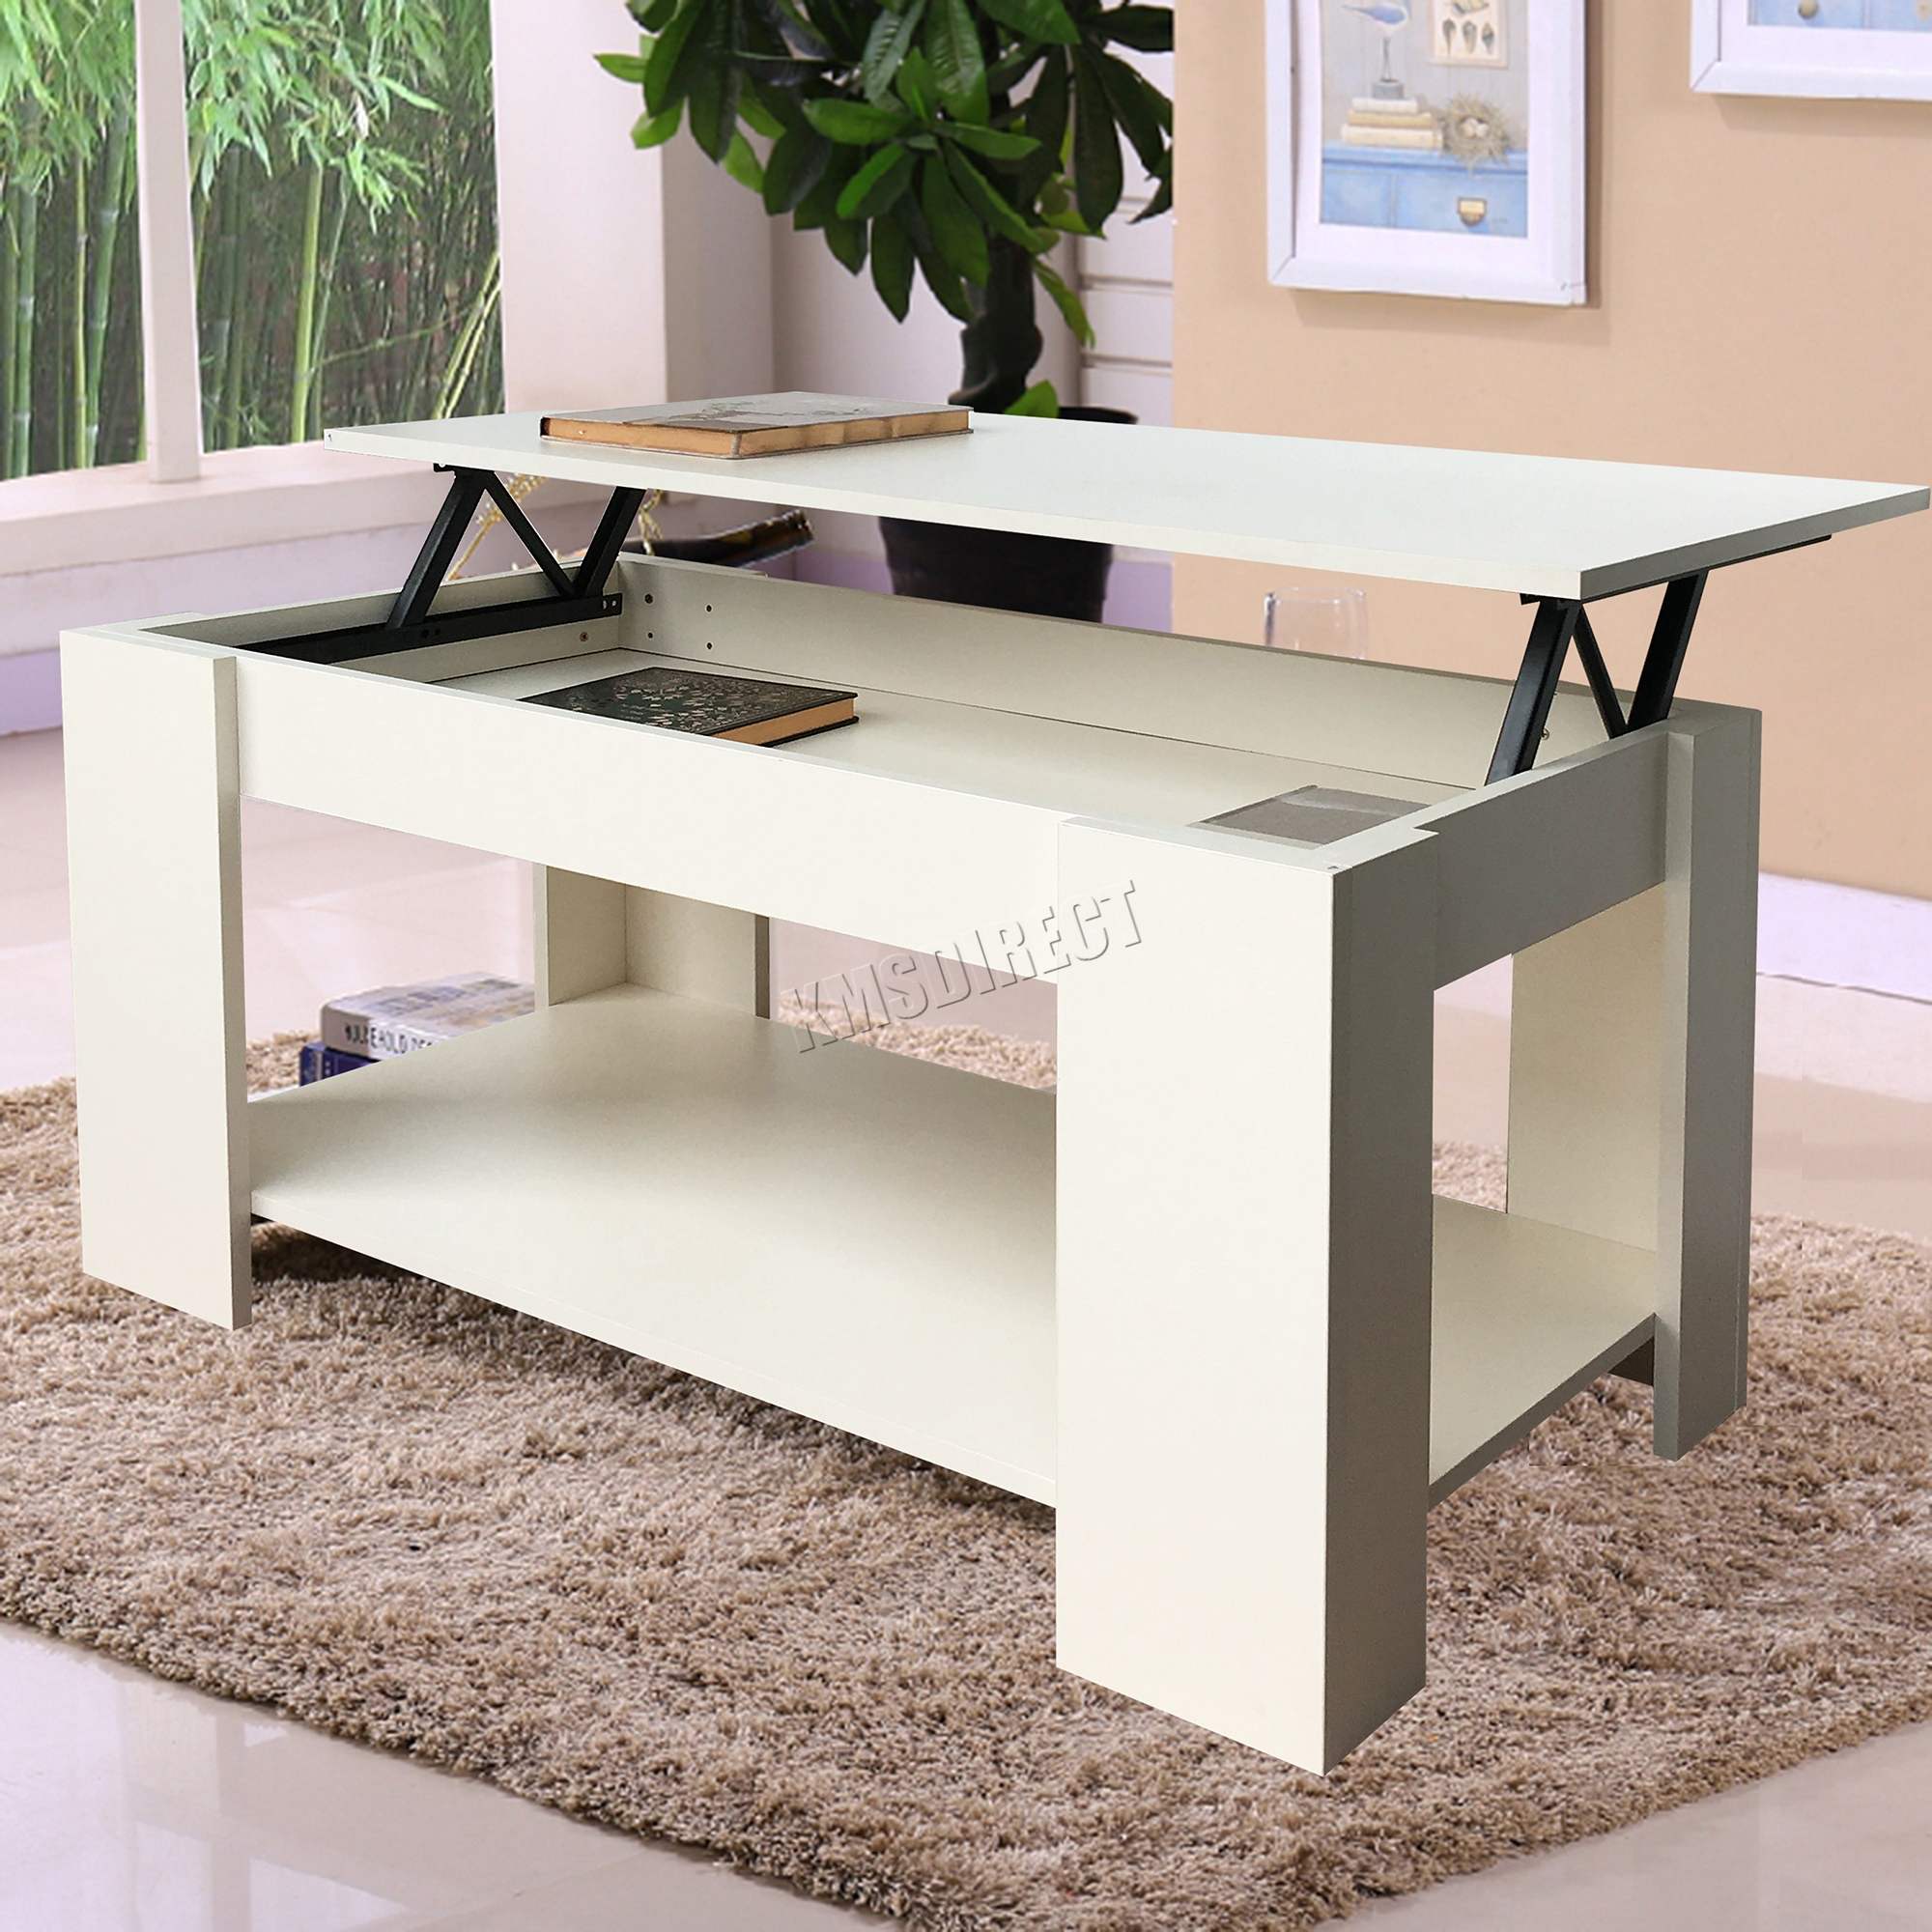 Foxhunter lift up top coffee table mdf with storage and for Does a living room need a coffee table